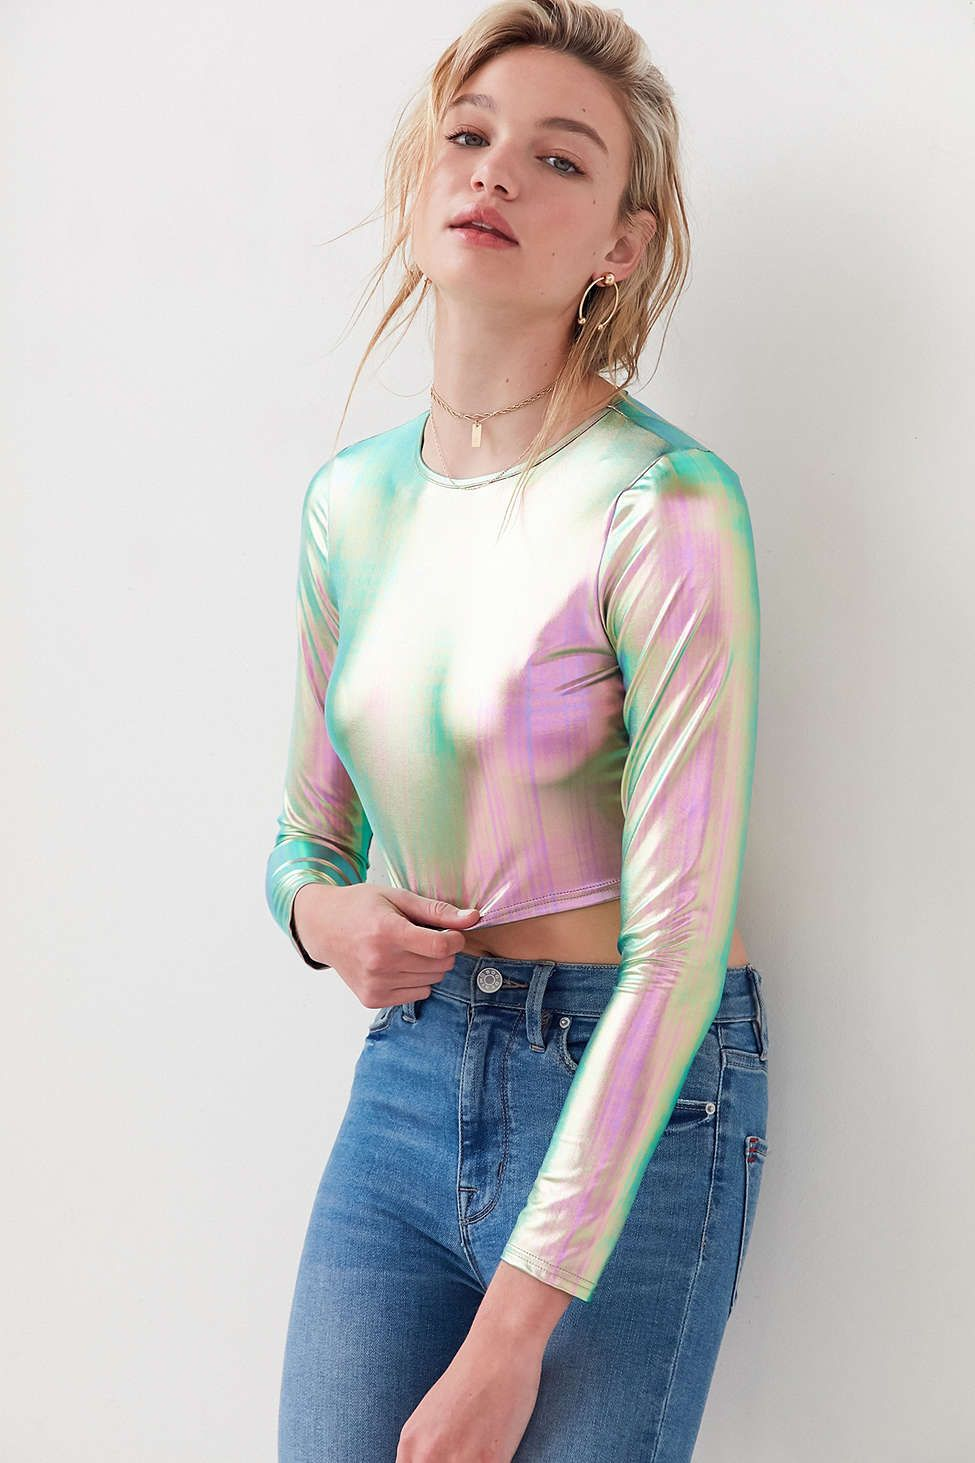 da0ba9512a5847 Long Sleeve Holographic Top | Want It. Need It. in 2019 ...